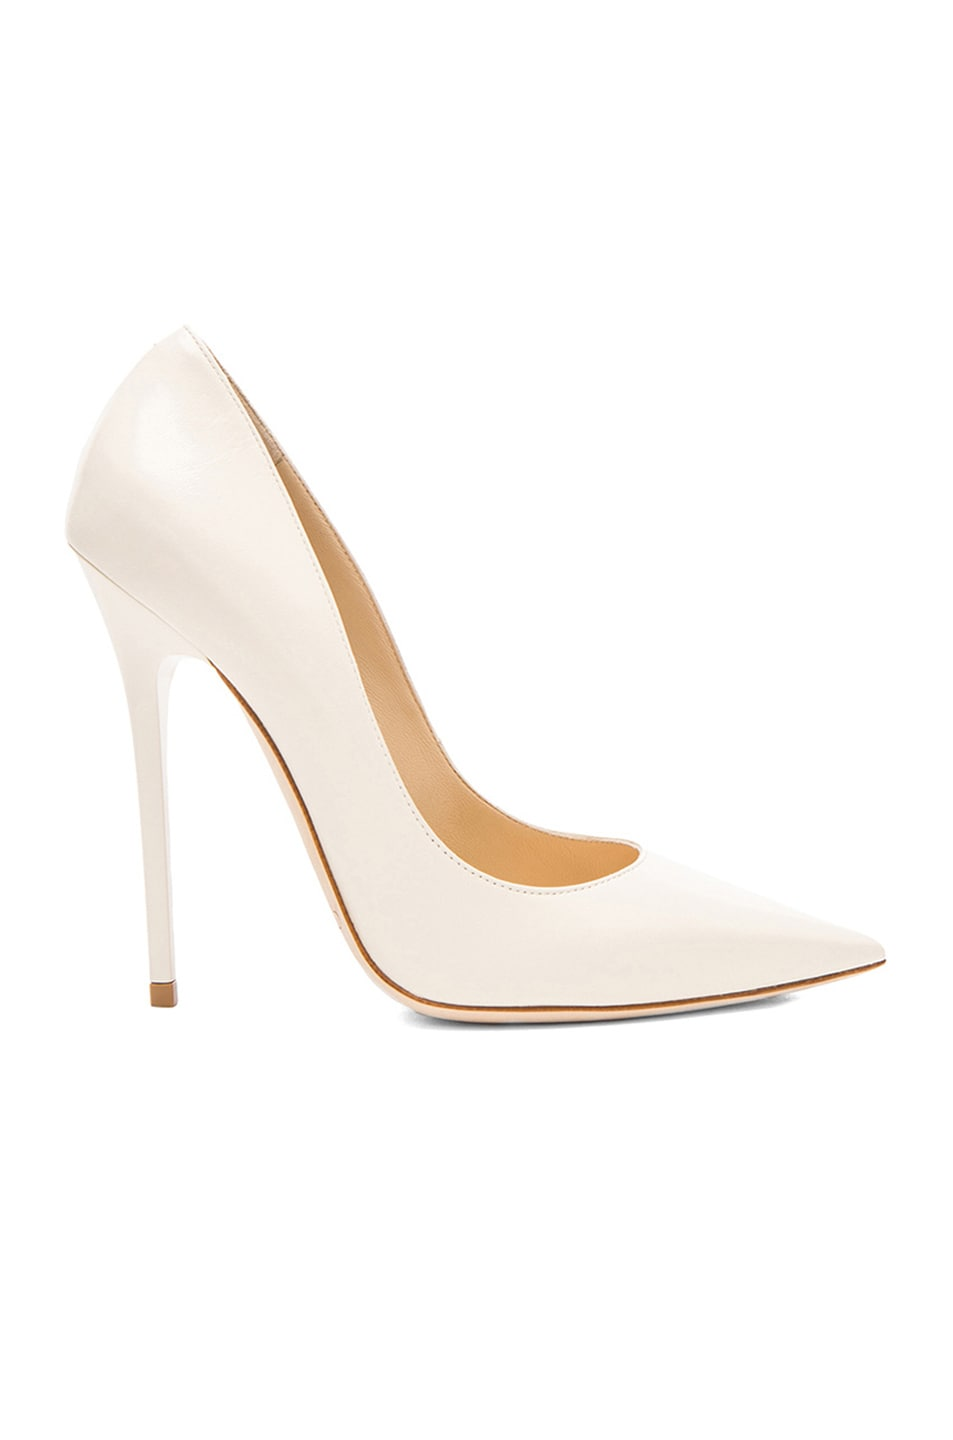 Image 1 of Jimmy Choo Anouk Leather Pumps in Off White